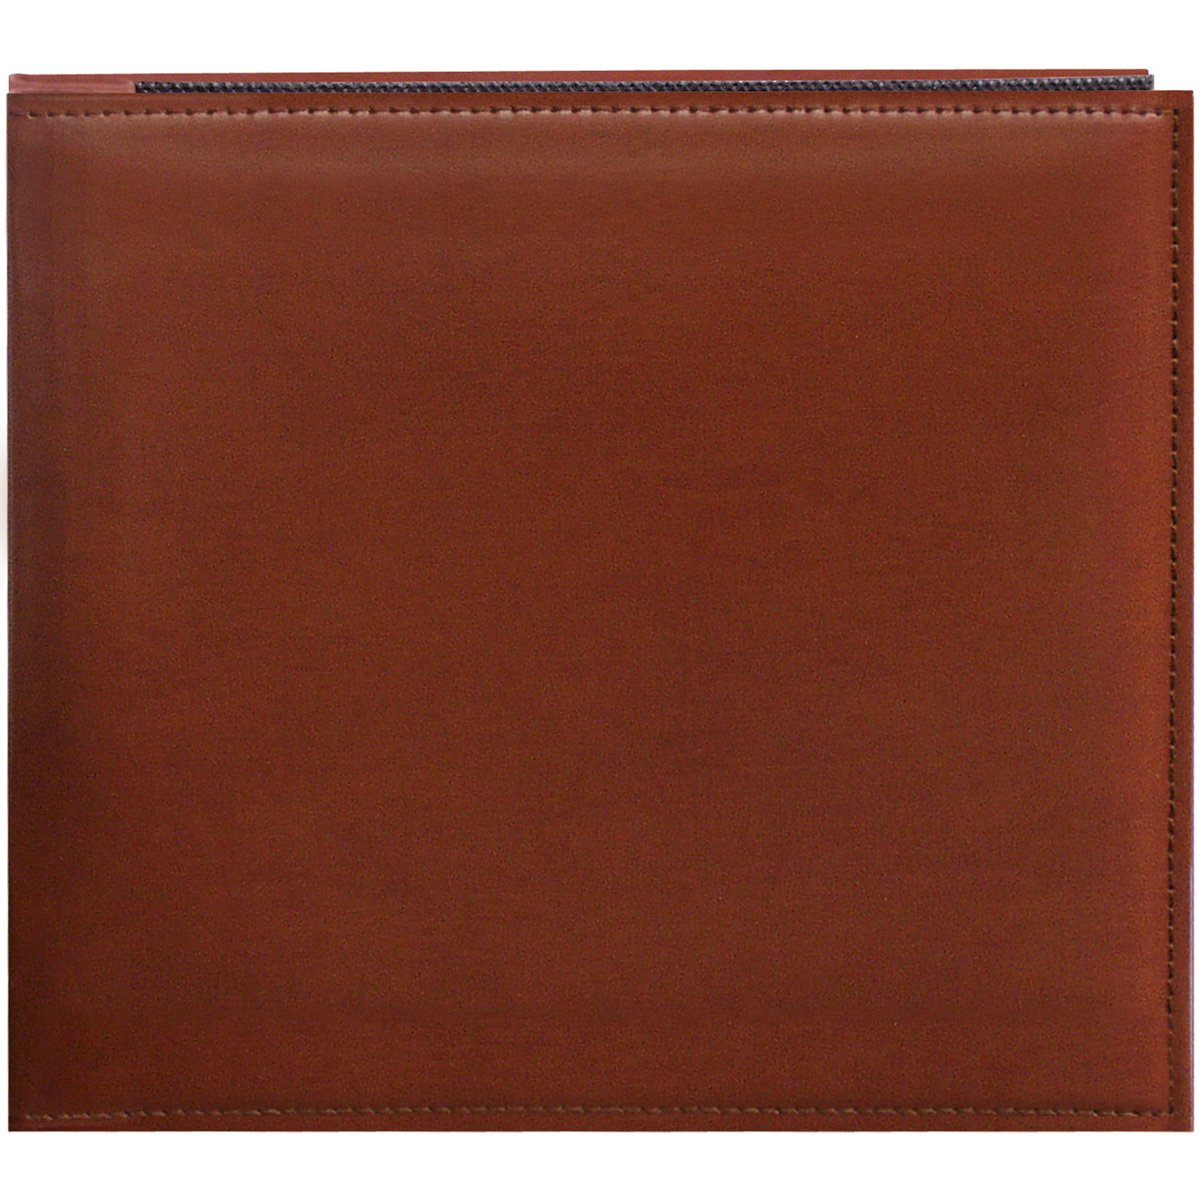 Pioneer Photo Albums 8 x 8-Inch Snapload Sewn Leatherette Memory Book, Brown SL-88BN